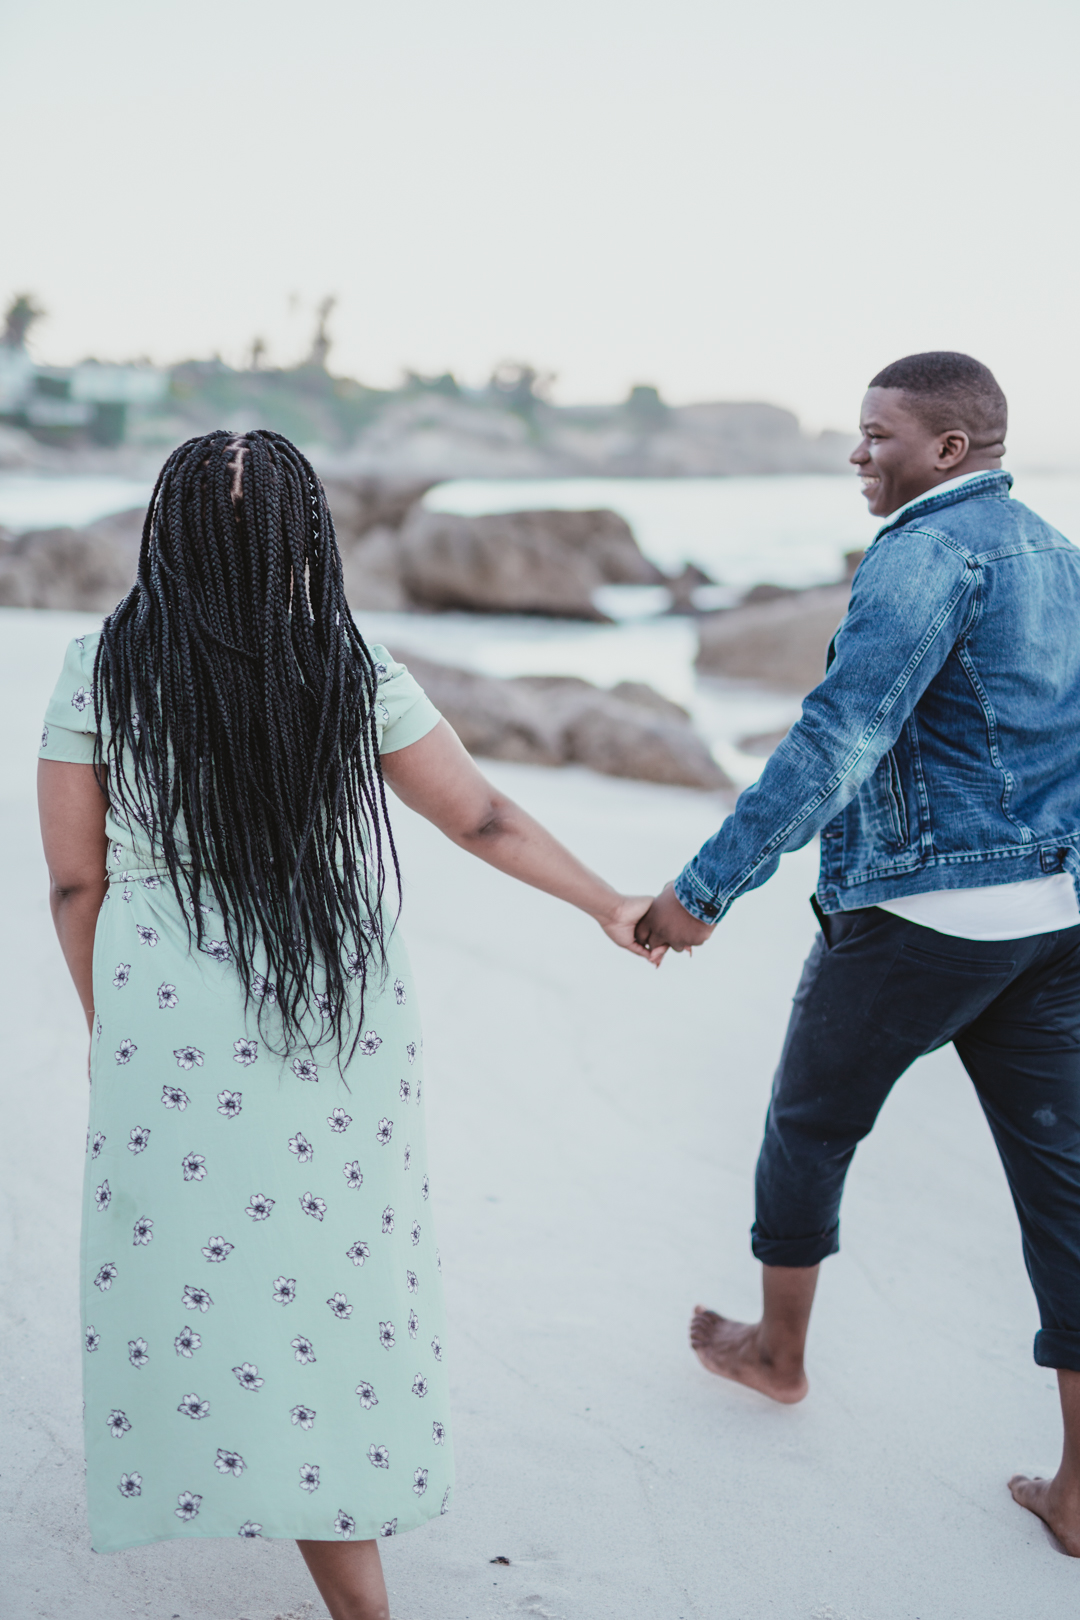 Couples Photos - Cape Town Beach session by Cape Image Co. _Small-file-3.jpg